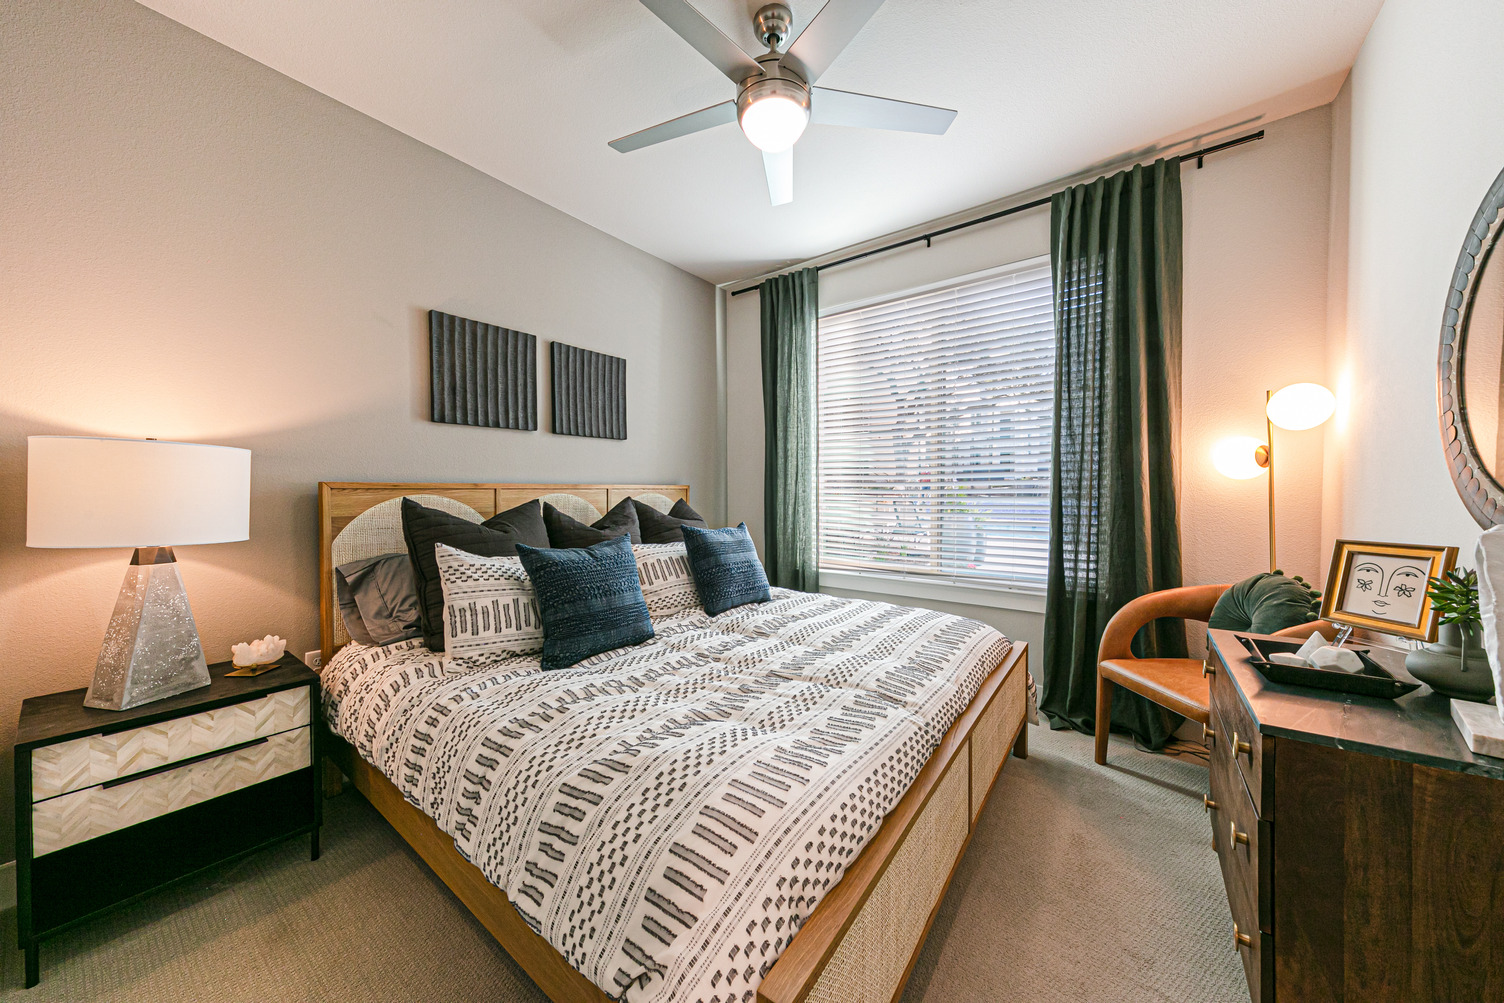 Model apartment bedroom with carpeting, ceiling fan, queen bed, and large window with blinds